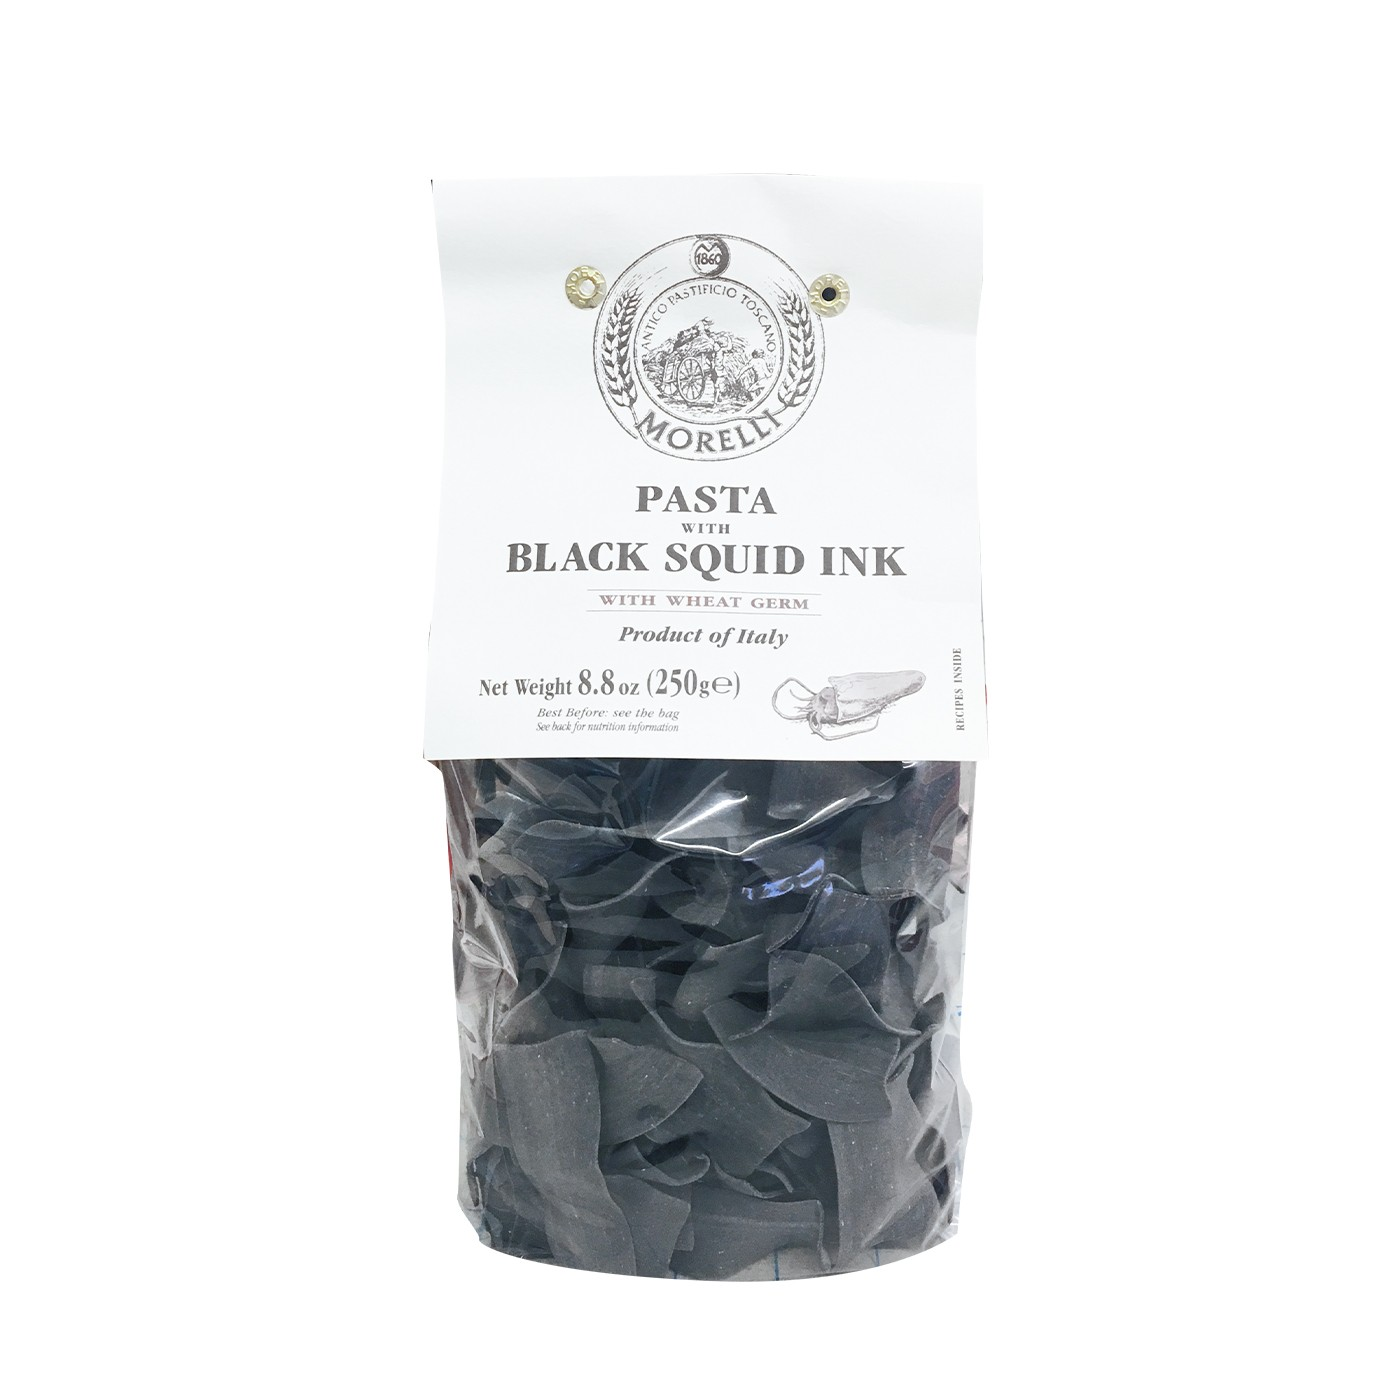 Straccetti Pasta with Black Squid Ink 8.8oz